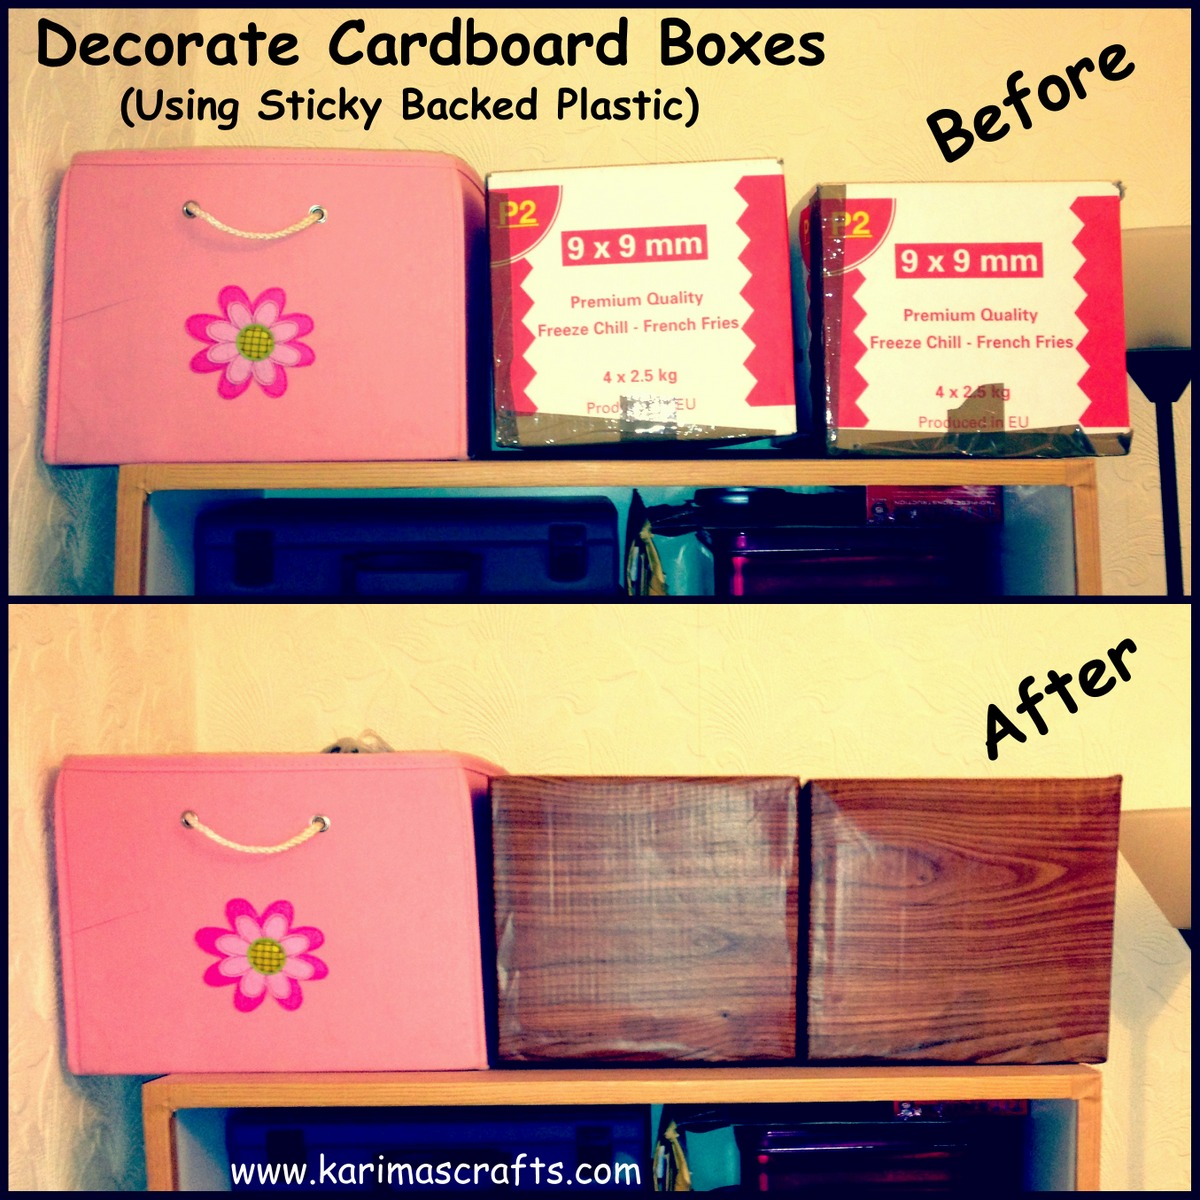 DIY Stylish Storage Boxes - Great Ideas  sc 1 st  Karimau0027s Crafts & Karimau0027s Crafts: DIY Stylish Storage Boxes - Great Ideas